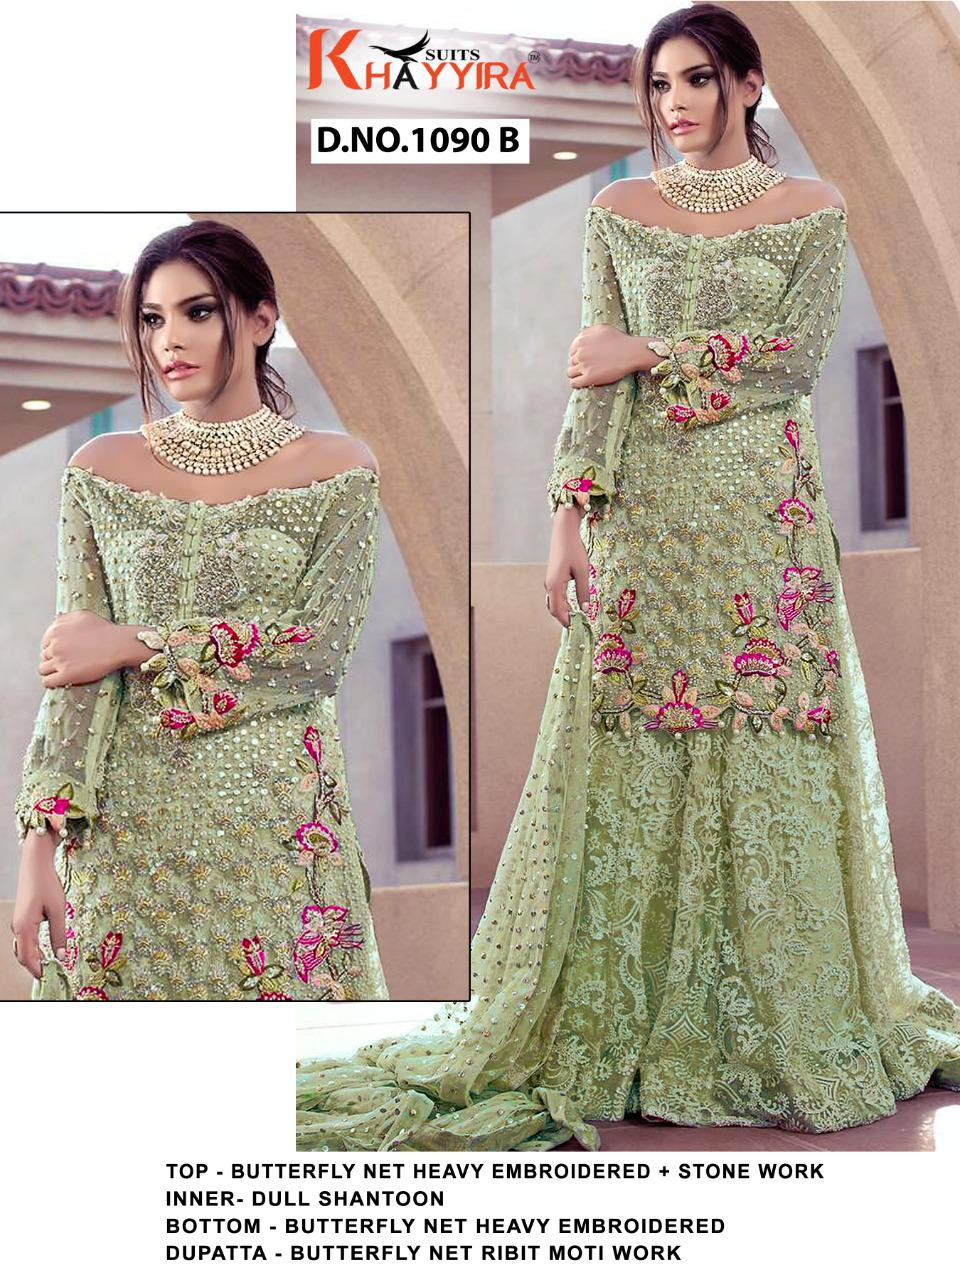 Khayyira Saira D No 1090 Salwar Suit Wholesale Catalog 4 Pcs 1 - Khayyira Saira D No 1090 Salwar Suit Wholesale Catalog 4 Pcs